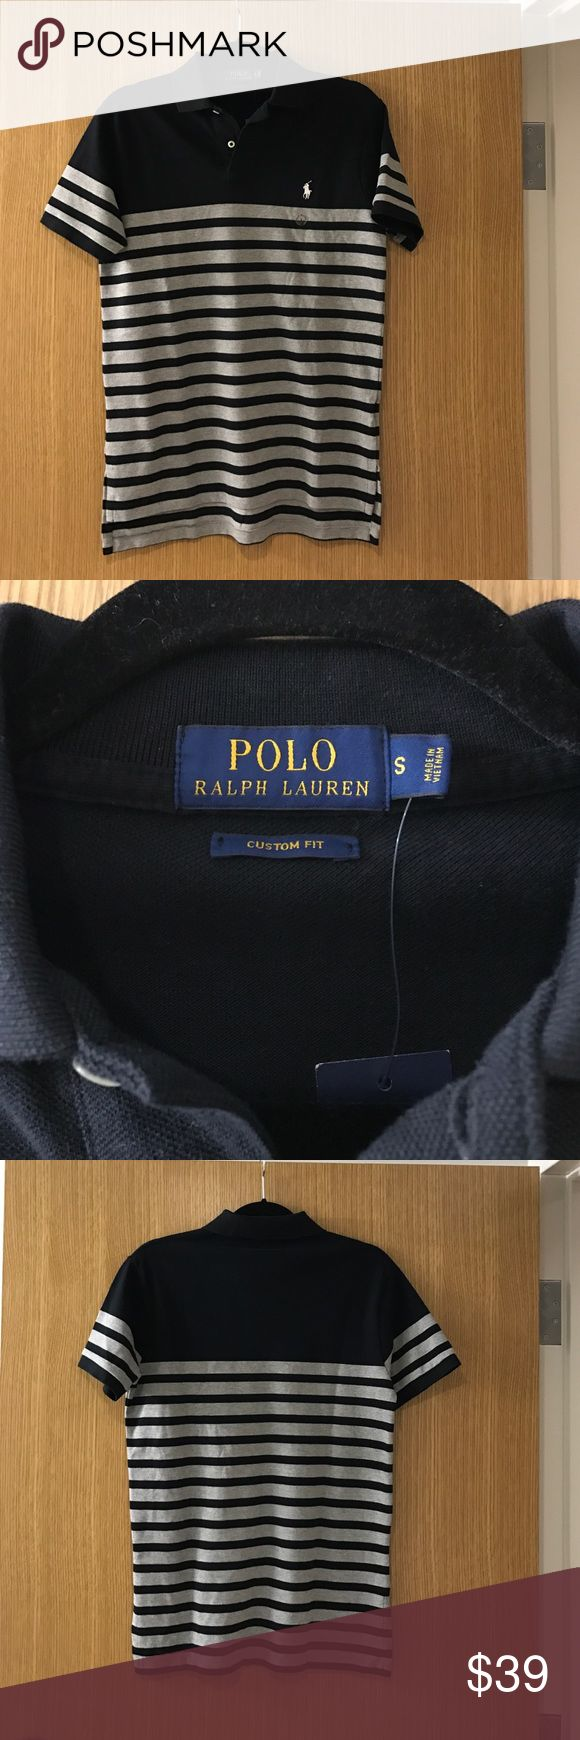 Men's Polo Ralph Lauren Polo Men's black and grey striped Polo Ralph Lauren polo. Size S. Never worn! Tags attached. Polo by Ralph Lauren Shirts Polos